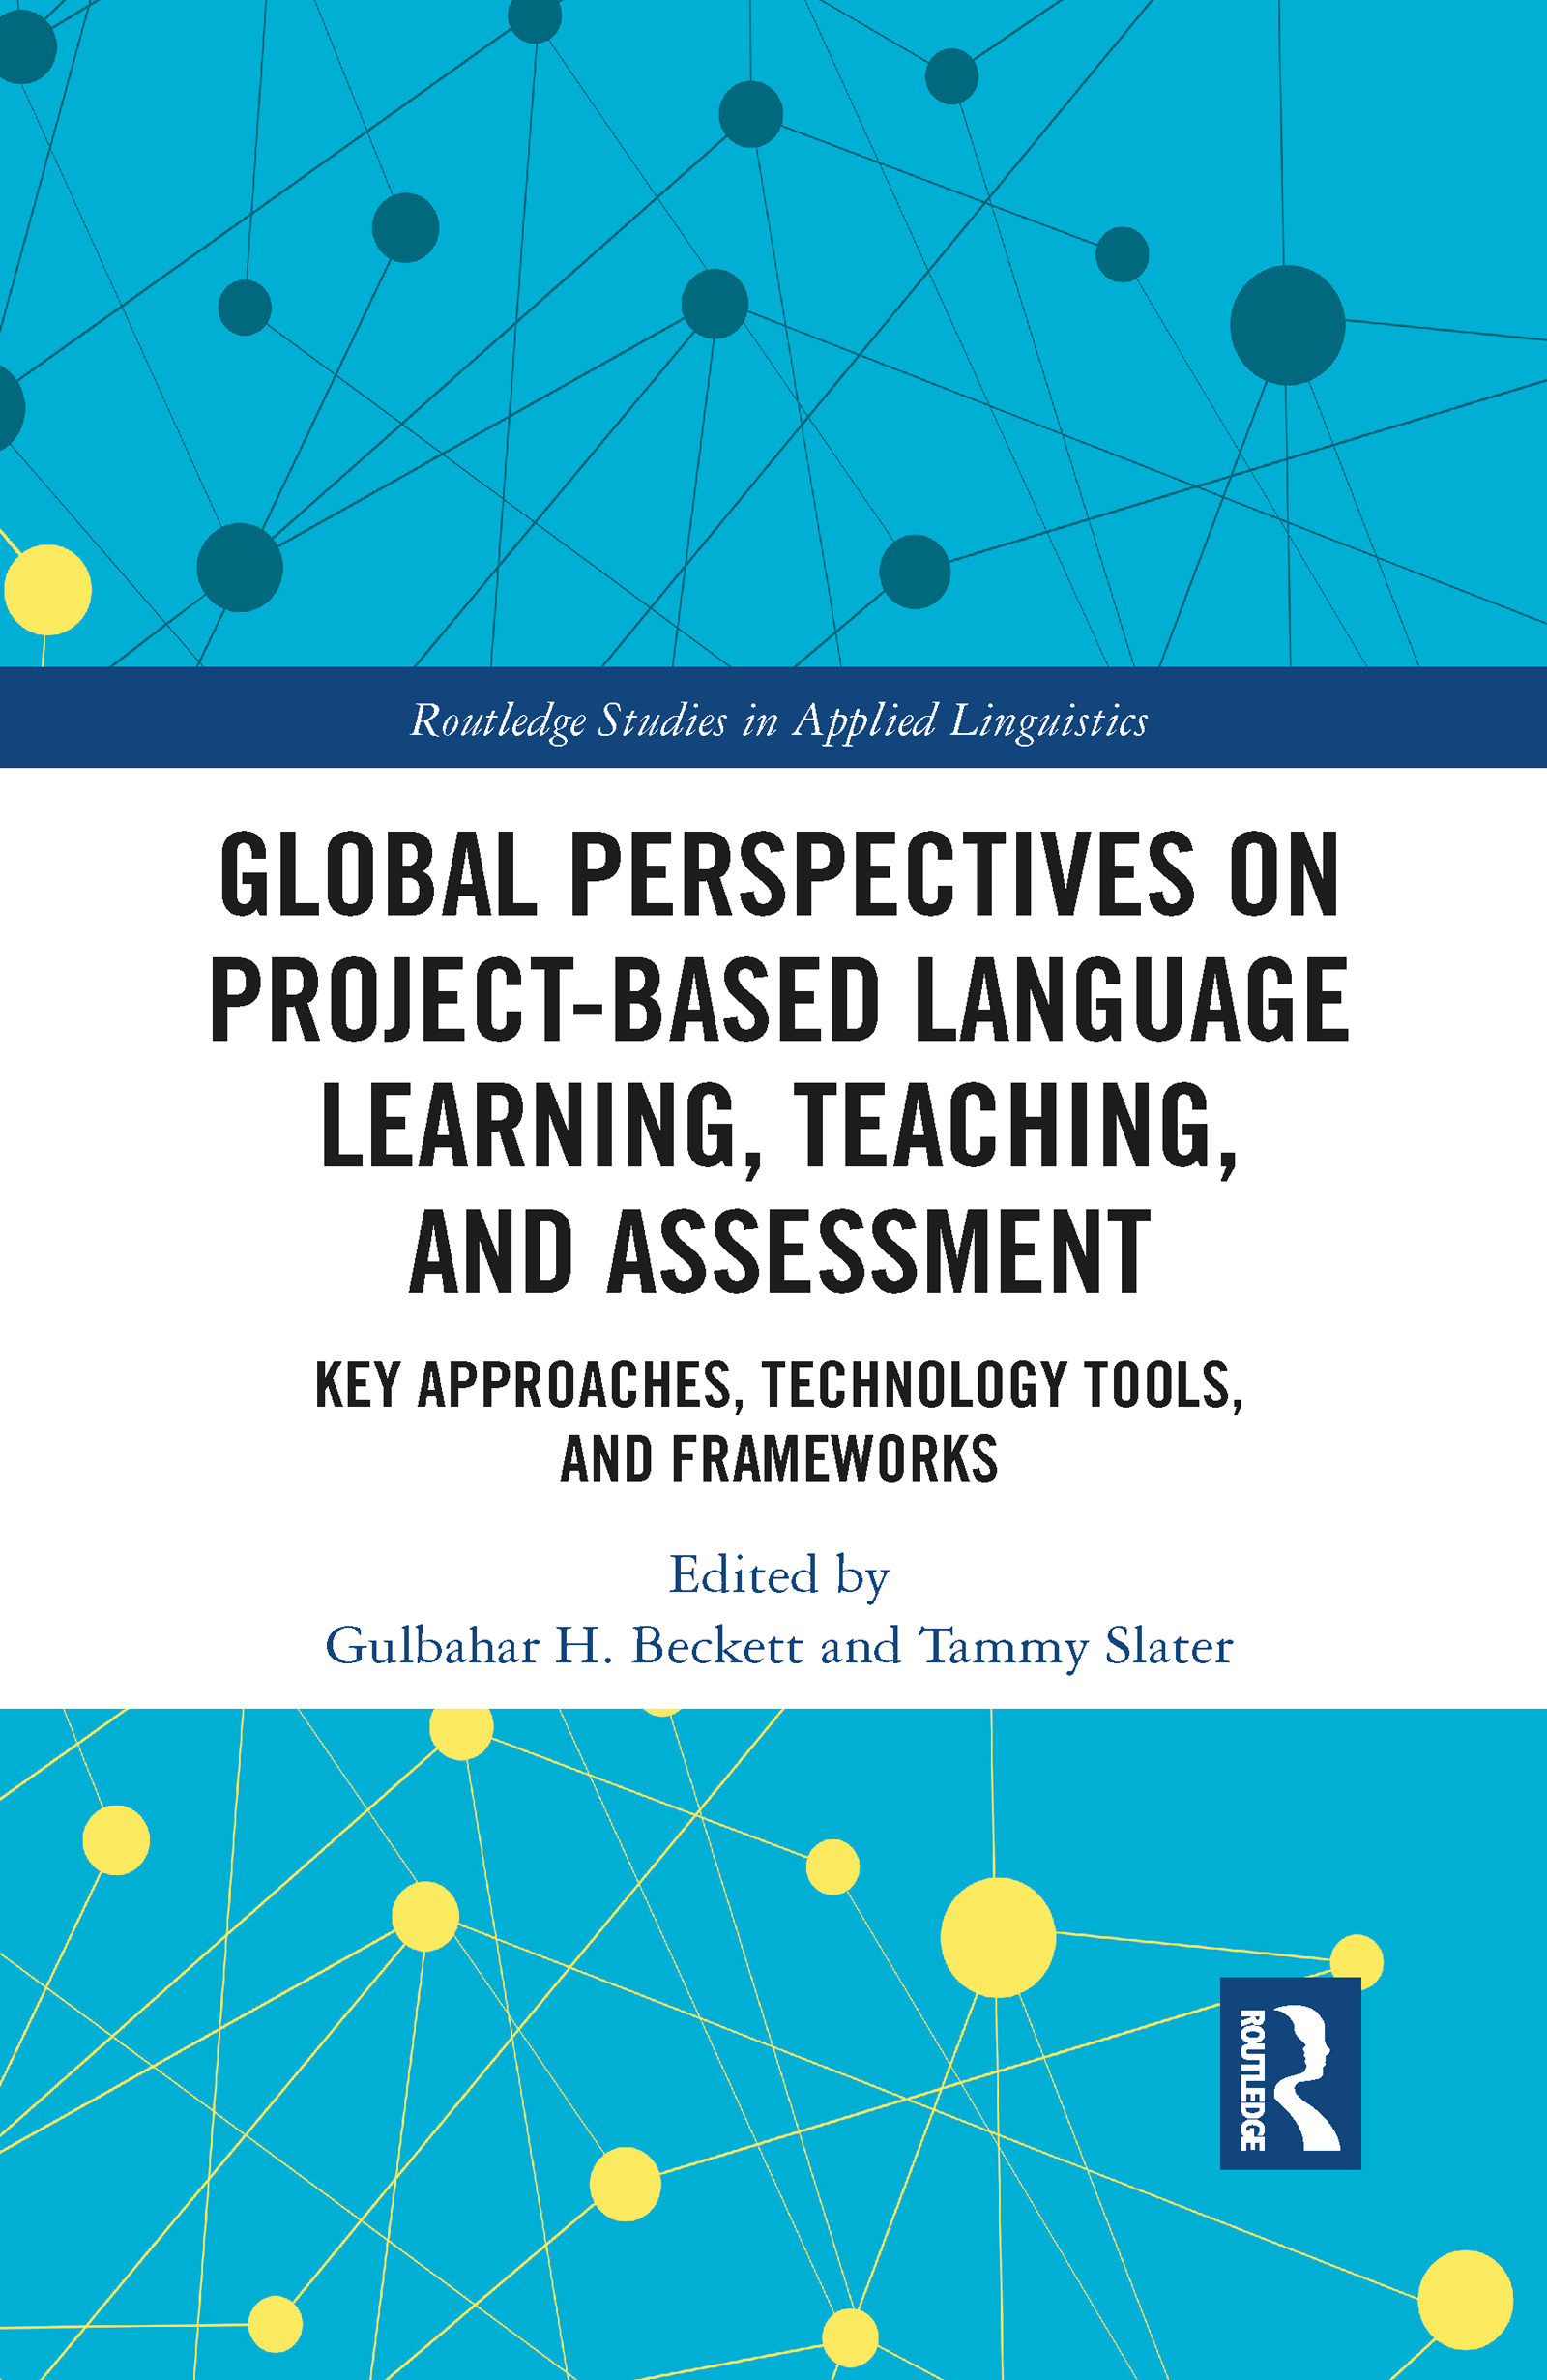 Global Perspectives on Project-based Language Learning, Teaching, and Assessment